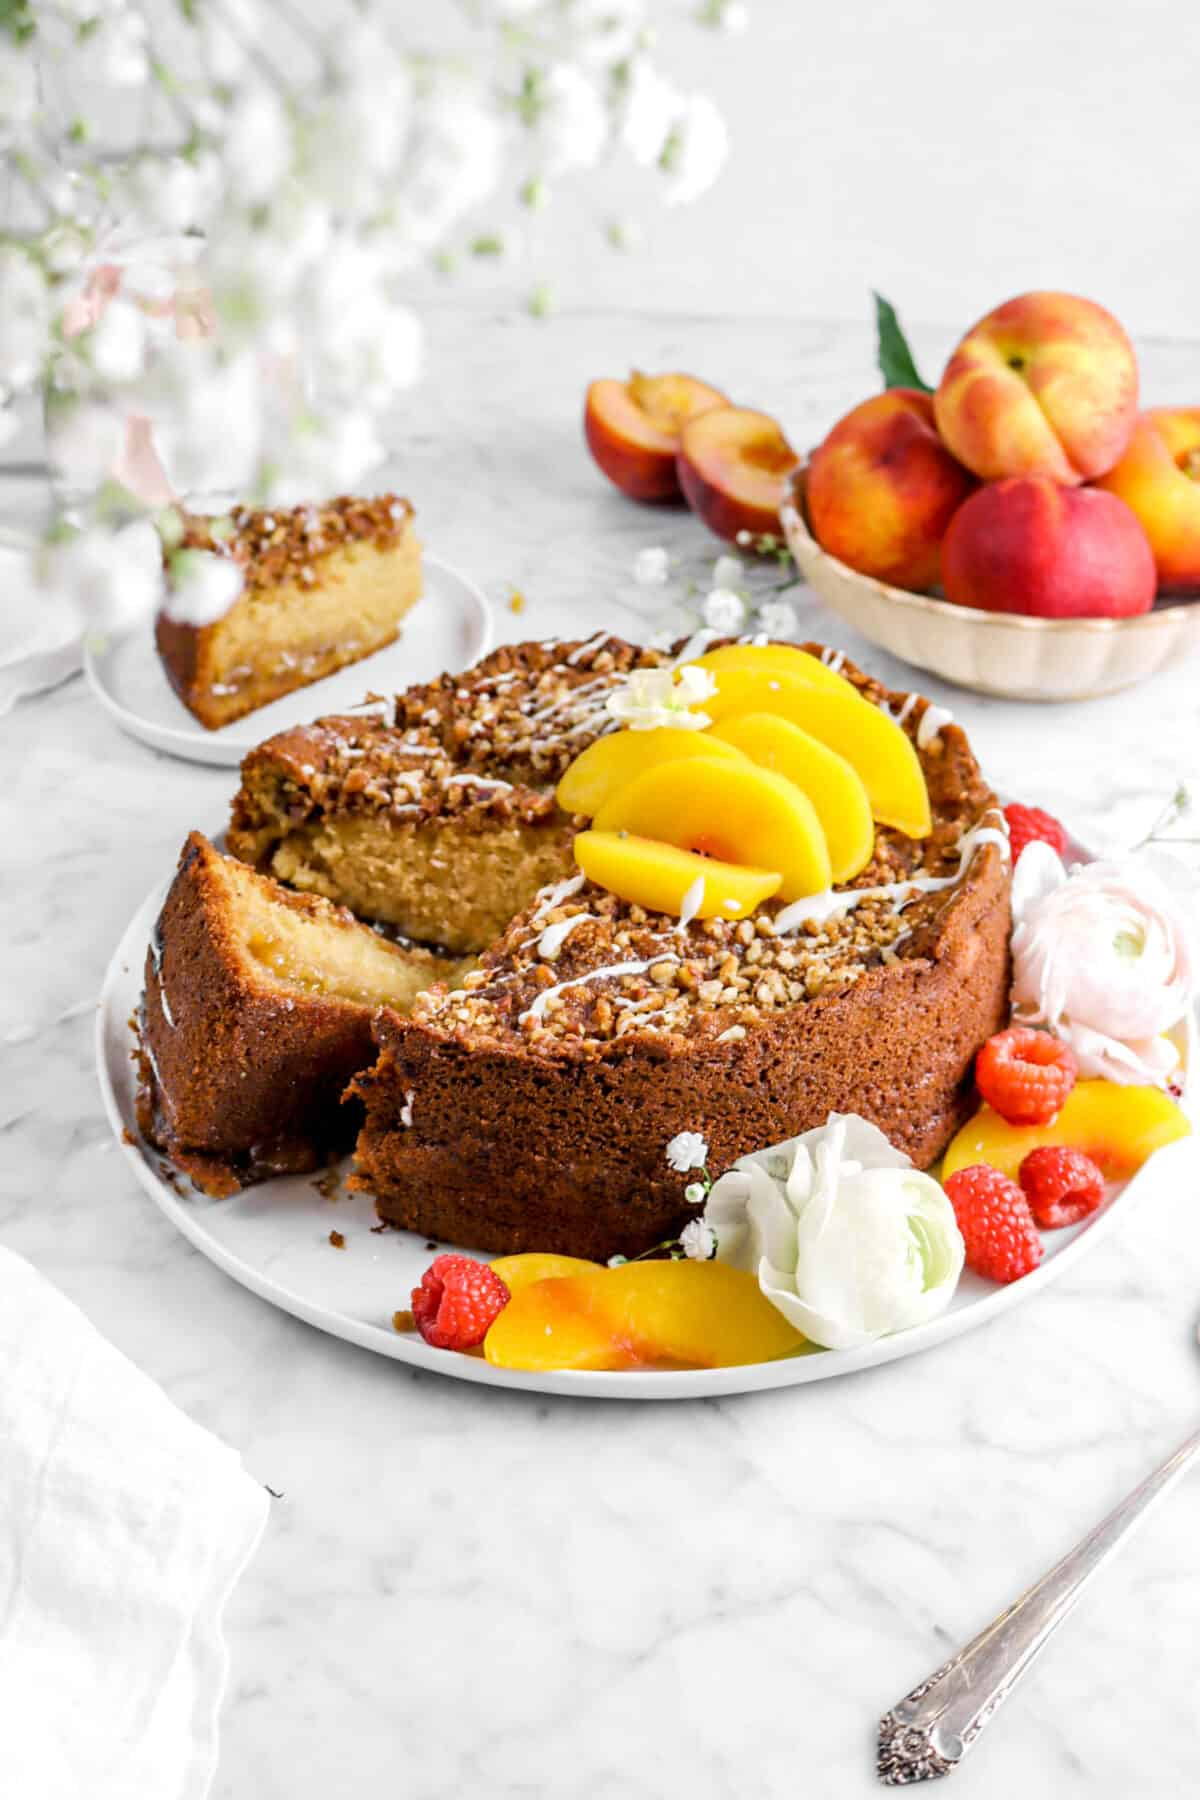 peach coffee cake on white plate with peaches, raspberries, flowers, whole peaches behind, and baby's breath flowers in front